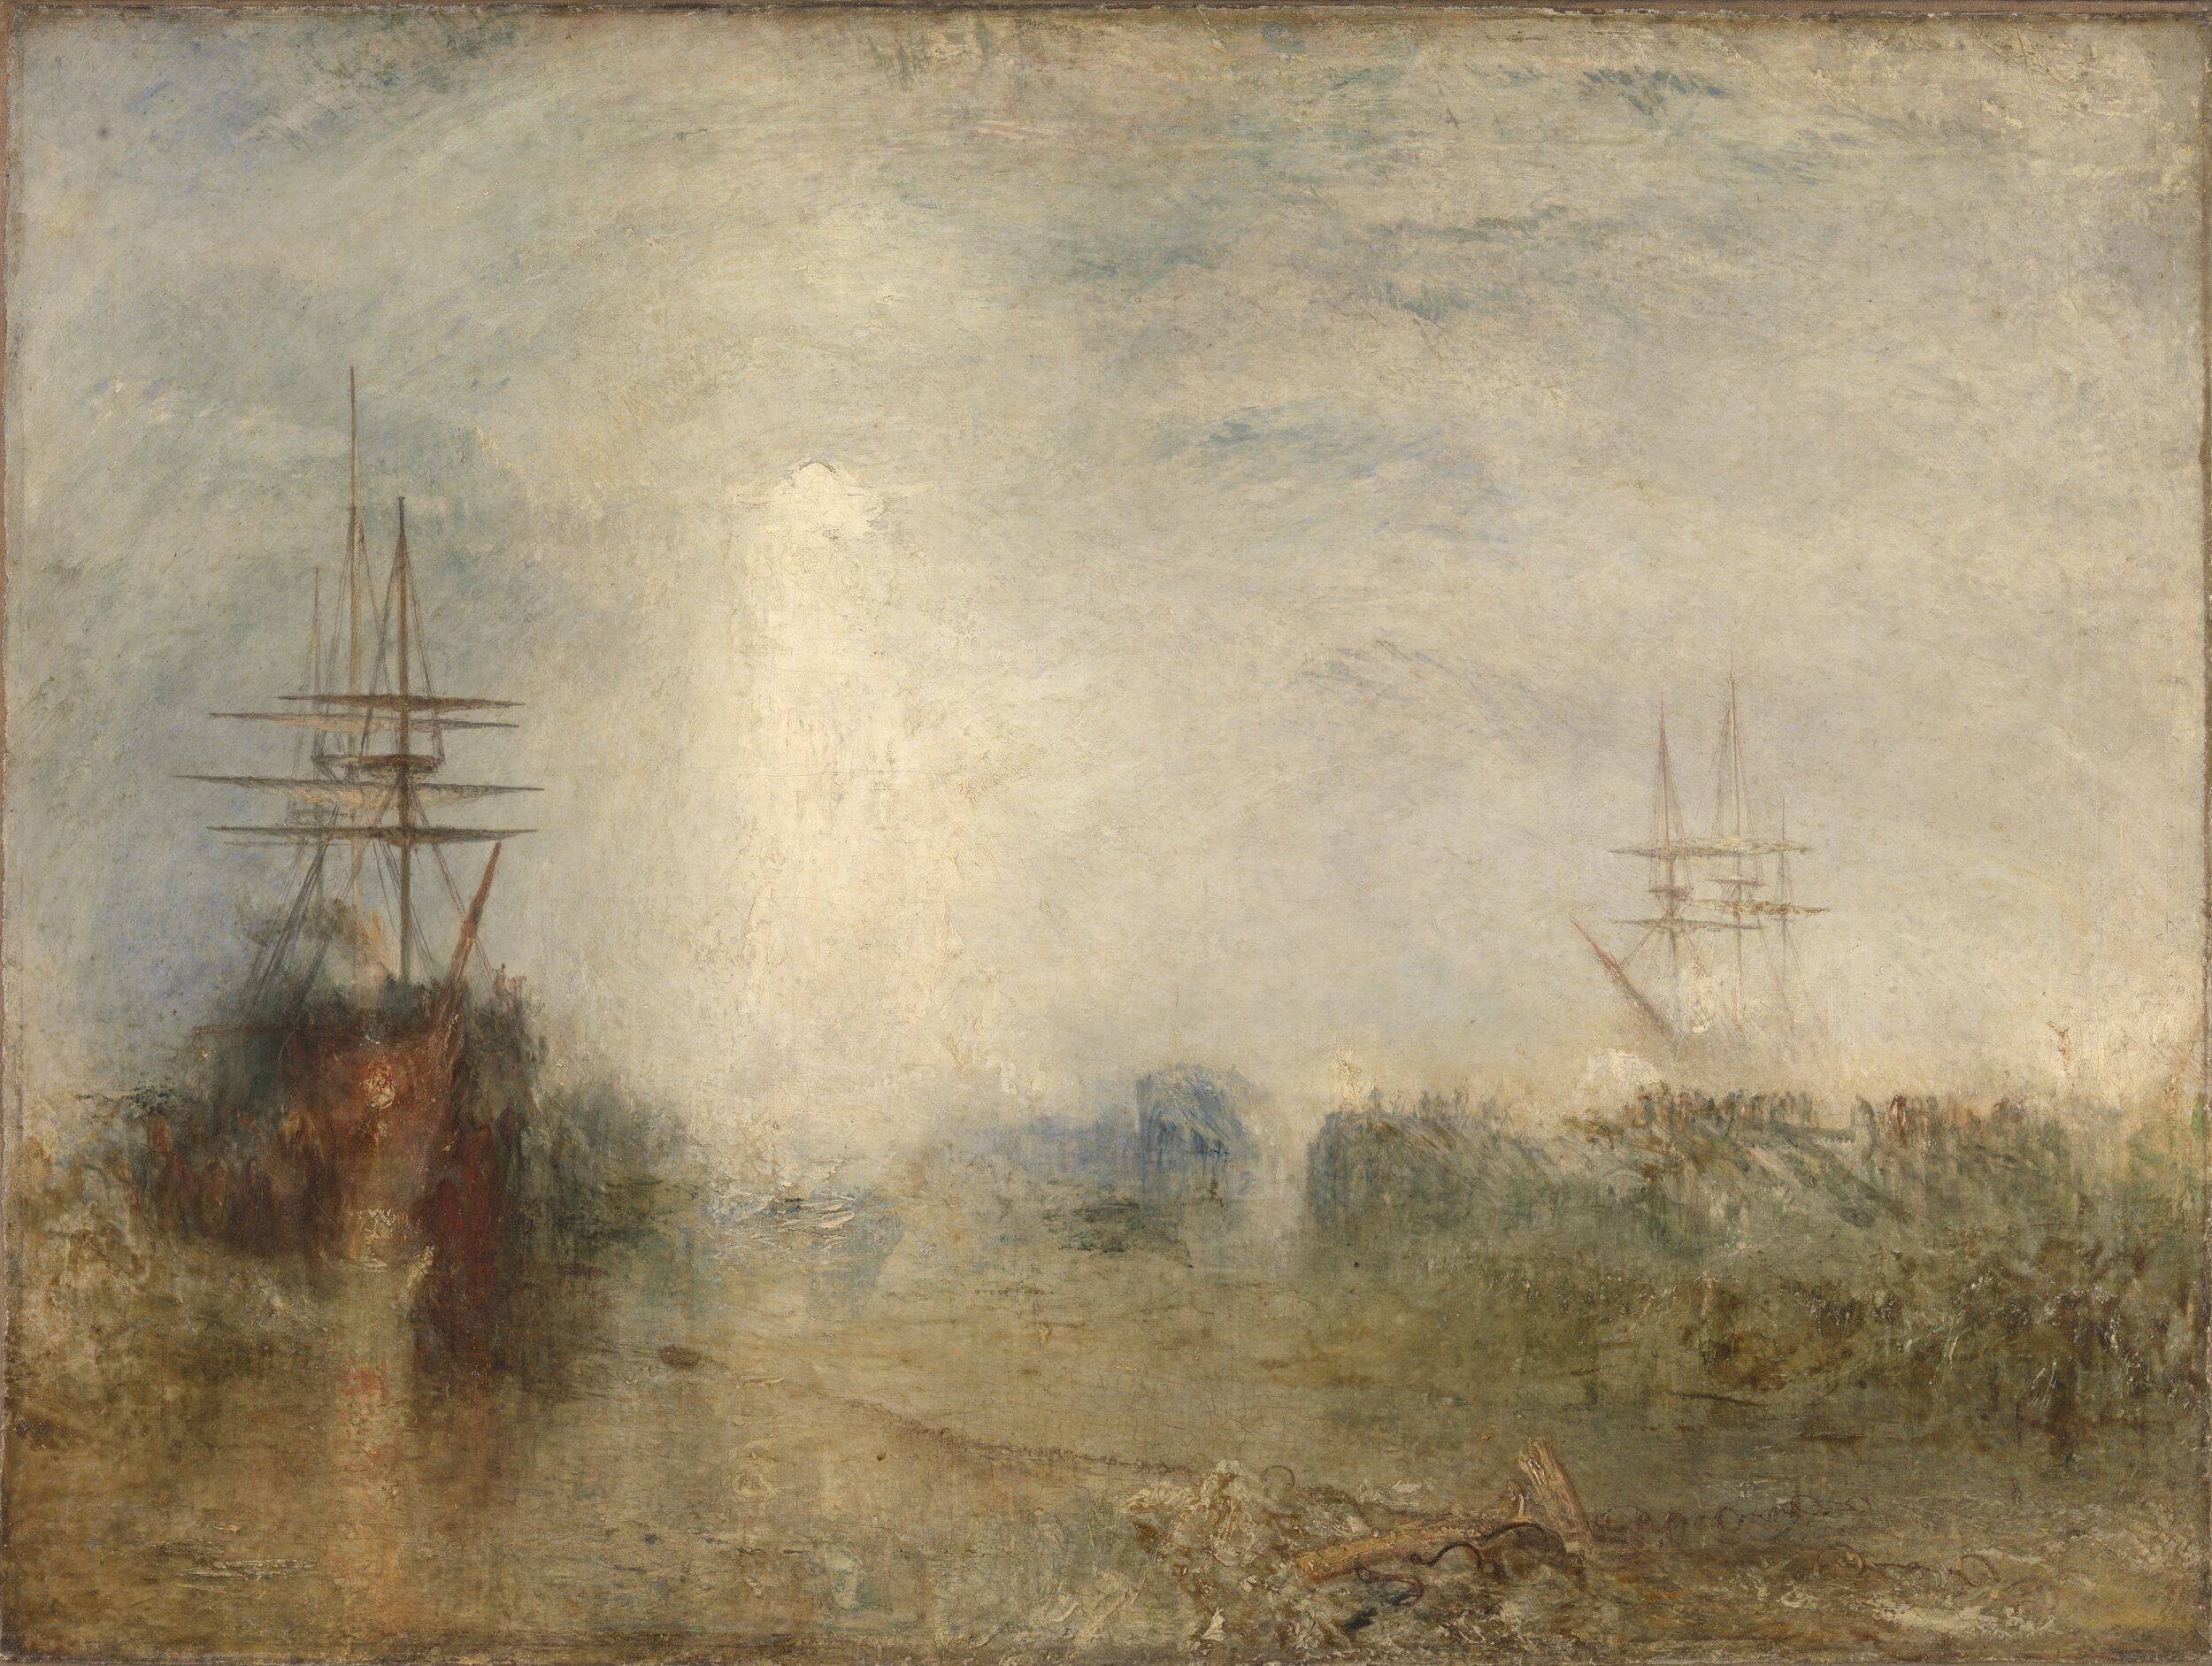 J. M. W. Turner,  Whalers (Boiling Blubber) Entangled in Flaw Ice, Endeavouring to Extricate Themselves , 1846, Oil on canvas, Tate.